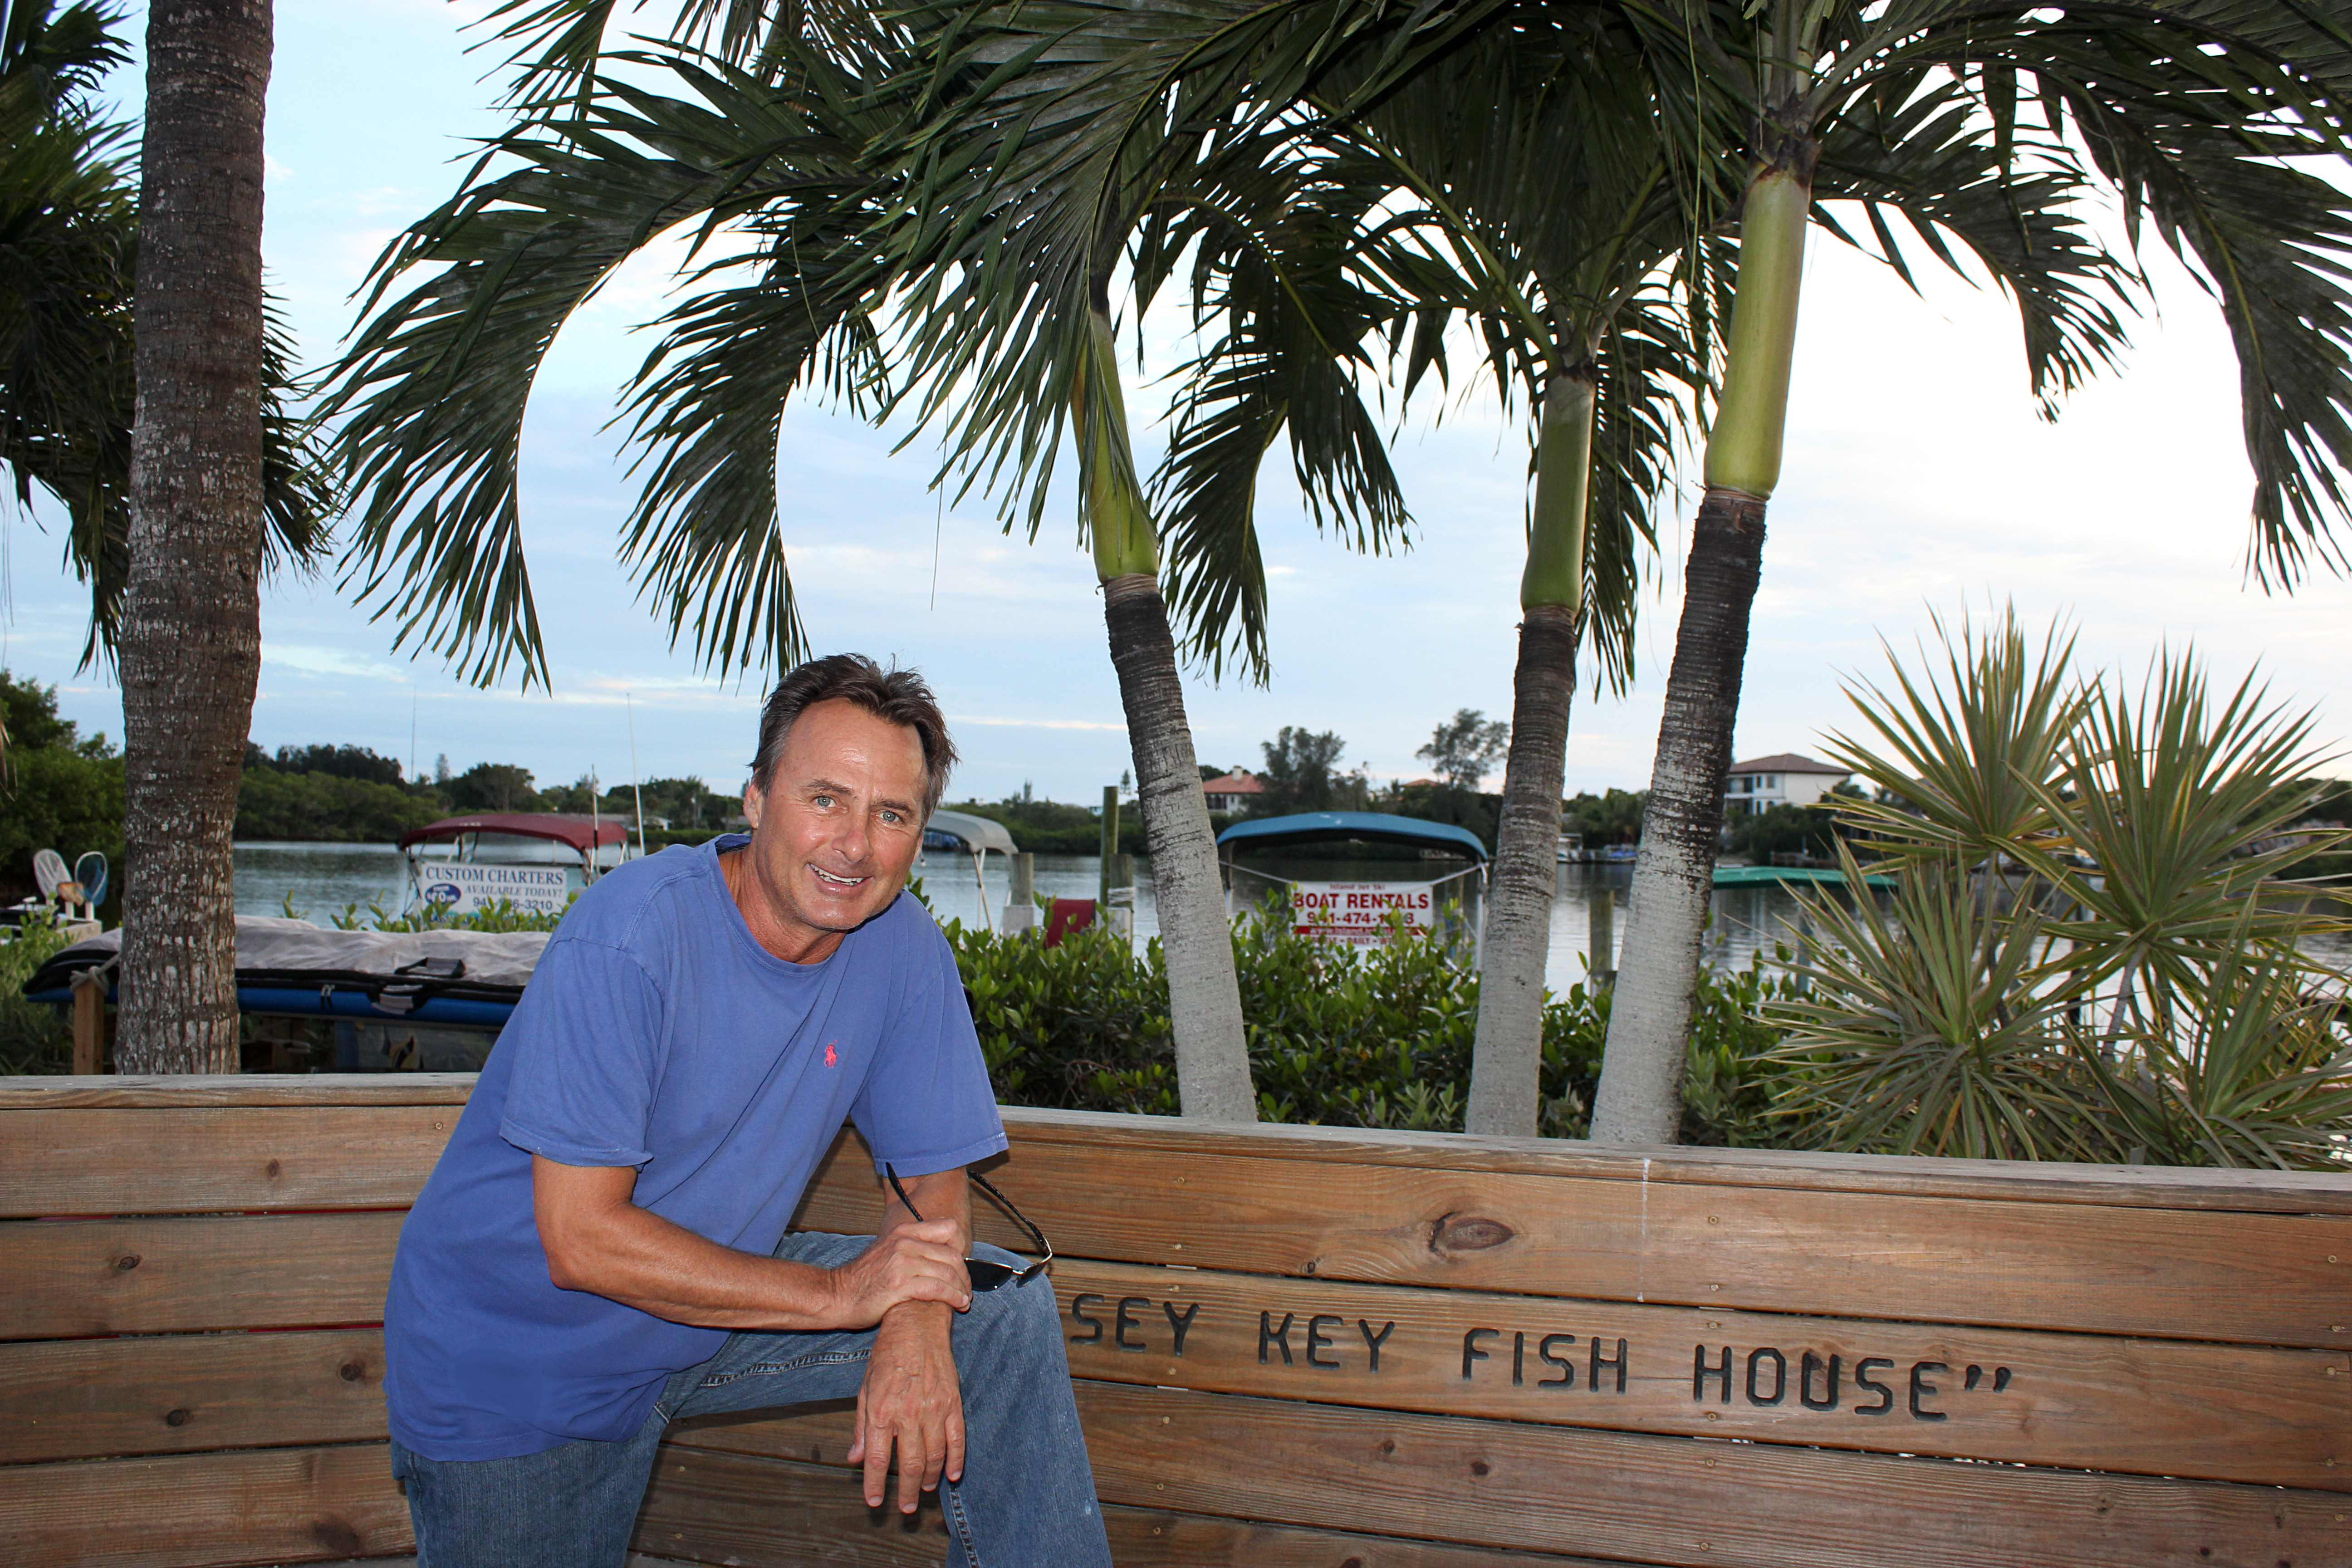 Photo gallery siesta sand for Casey key fish house